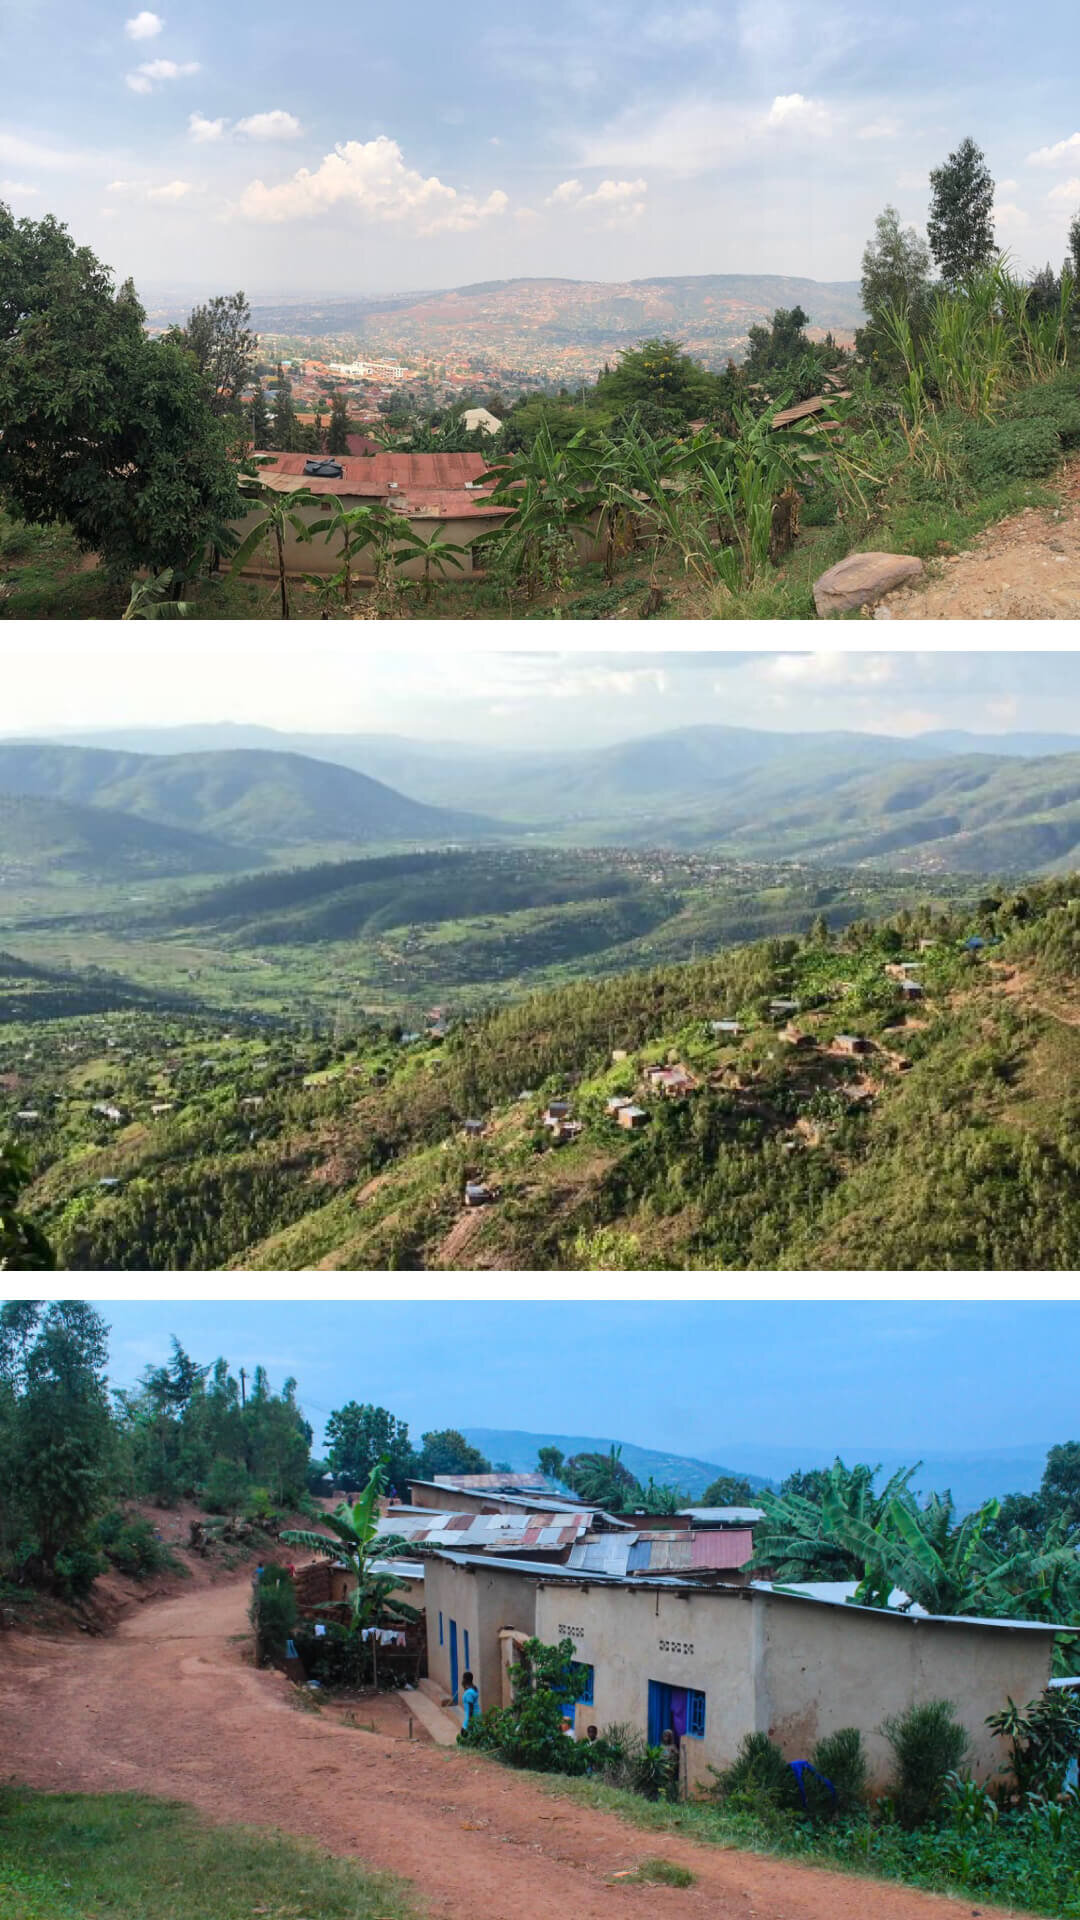 22.hike Mt. Kigali [you might as well]